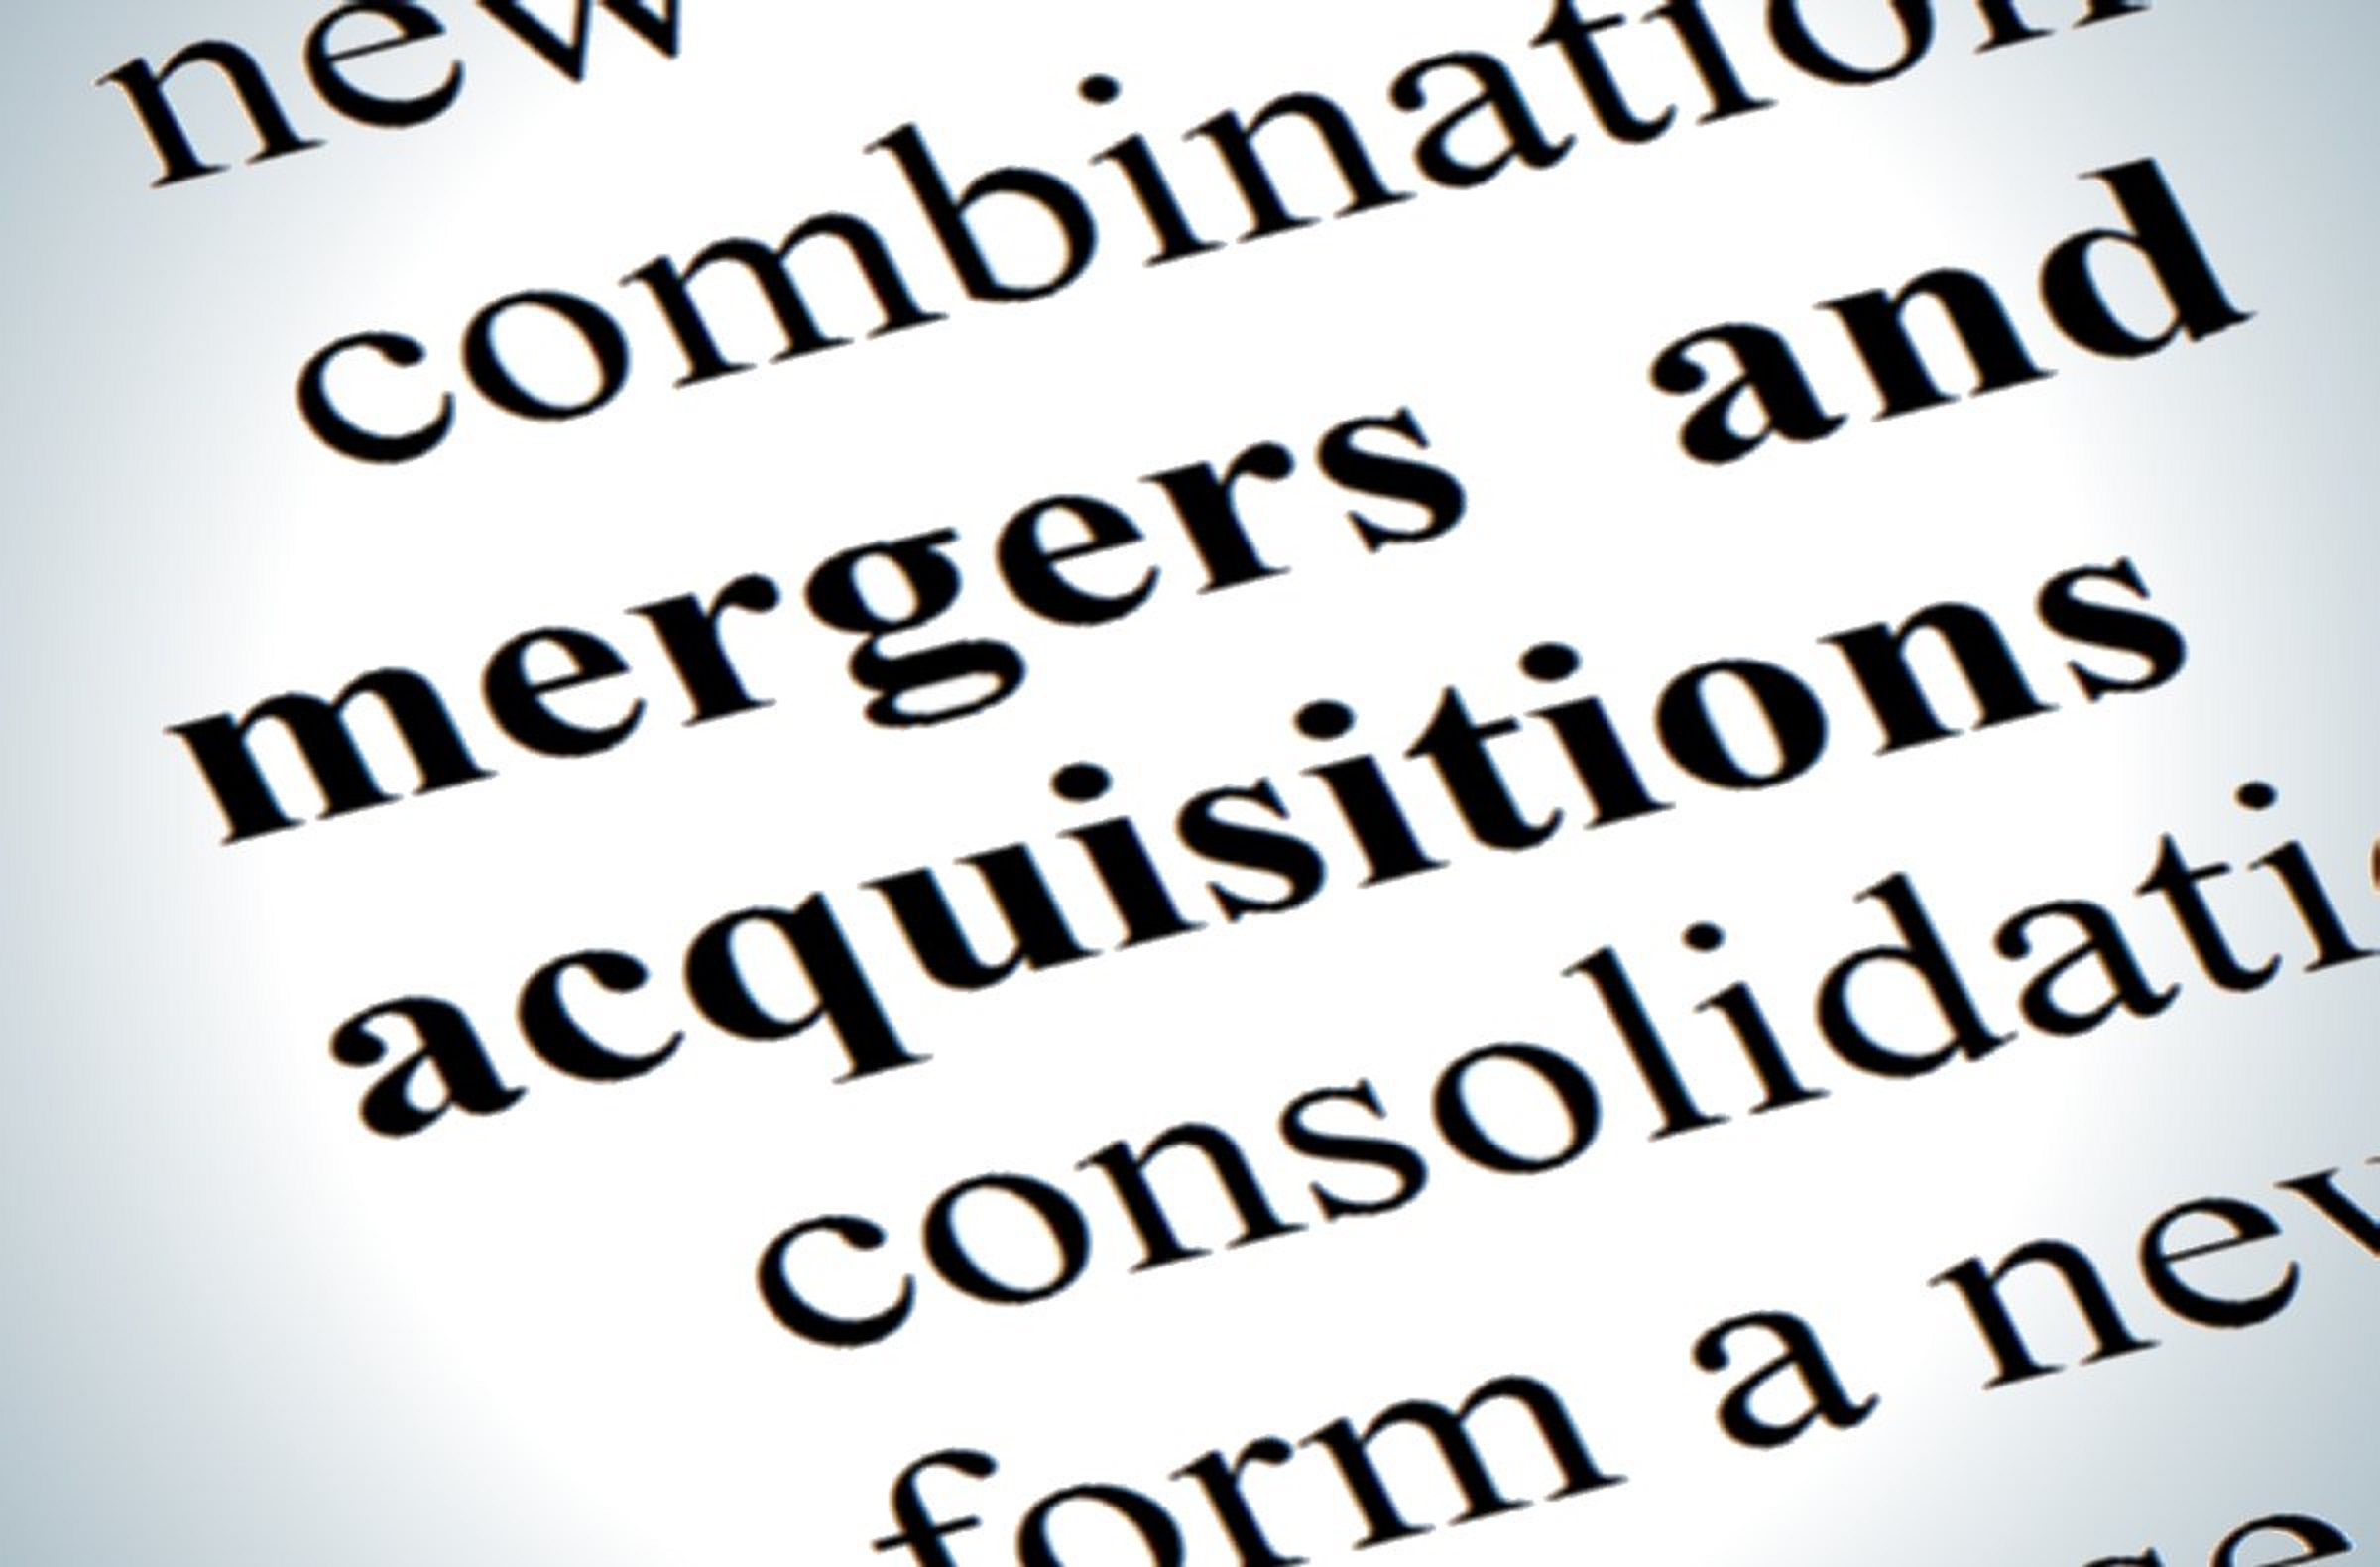 Mergers, Mergers and Acquisitions, Employee Assessment, HR Due Diligence, Workforce Integration